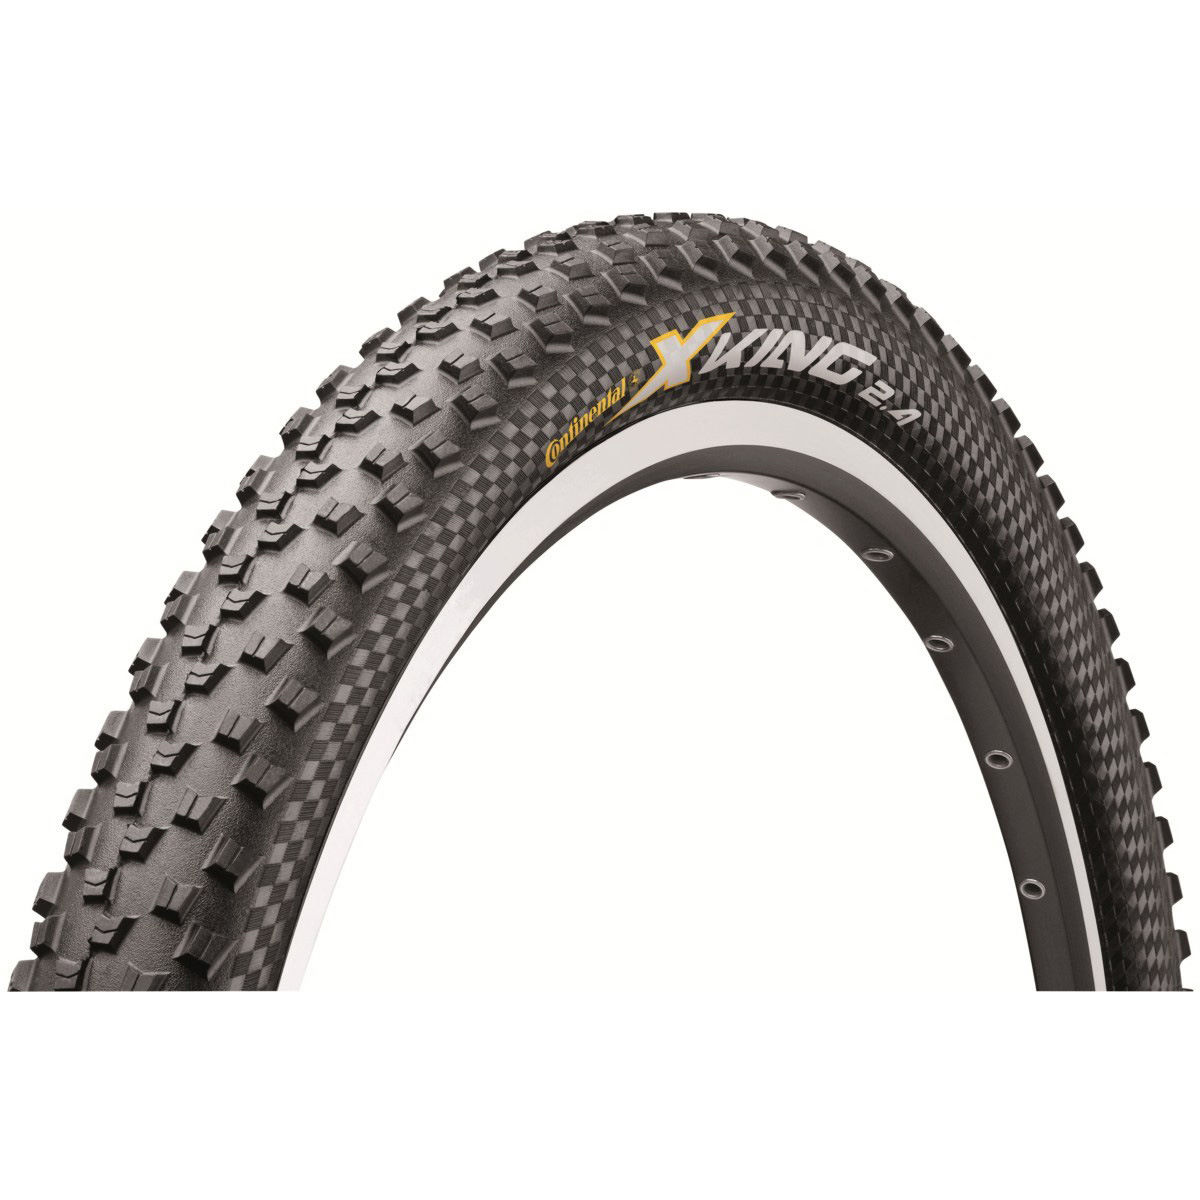 Pneu VTT Continental X King ProTection (souple) - 26 x 2.2 Noir Pneus VTT